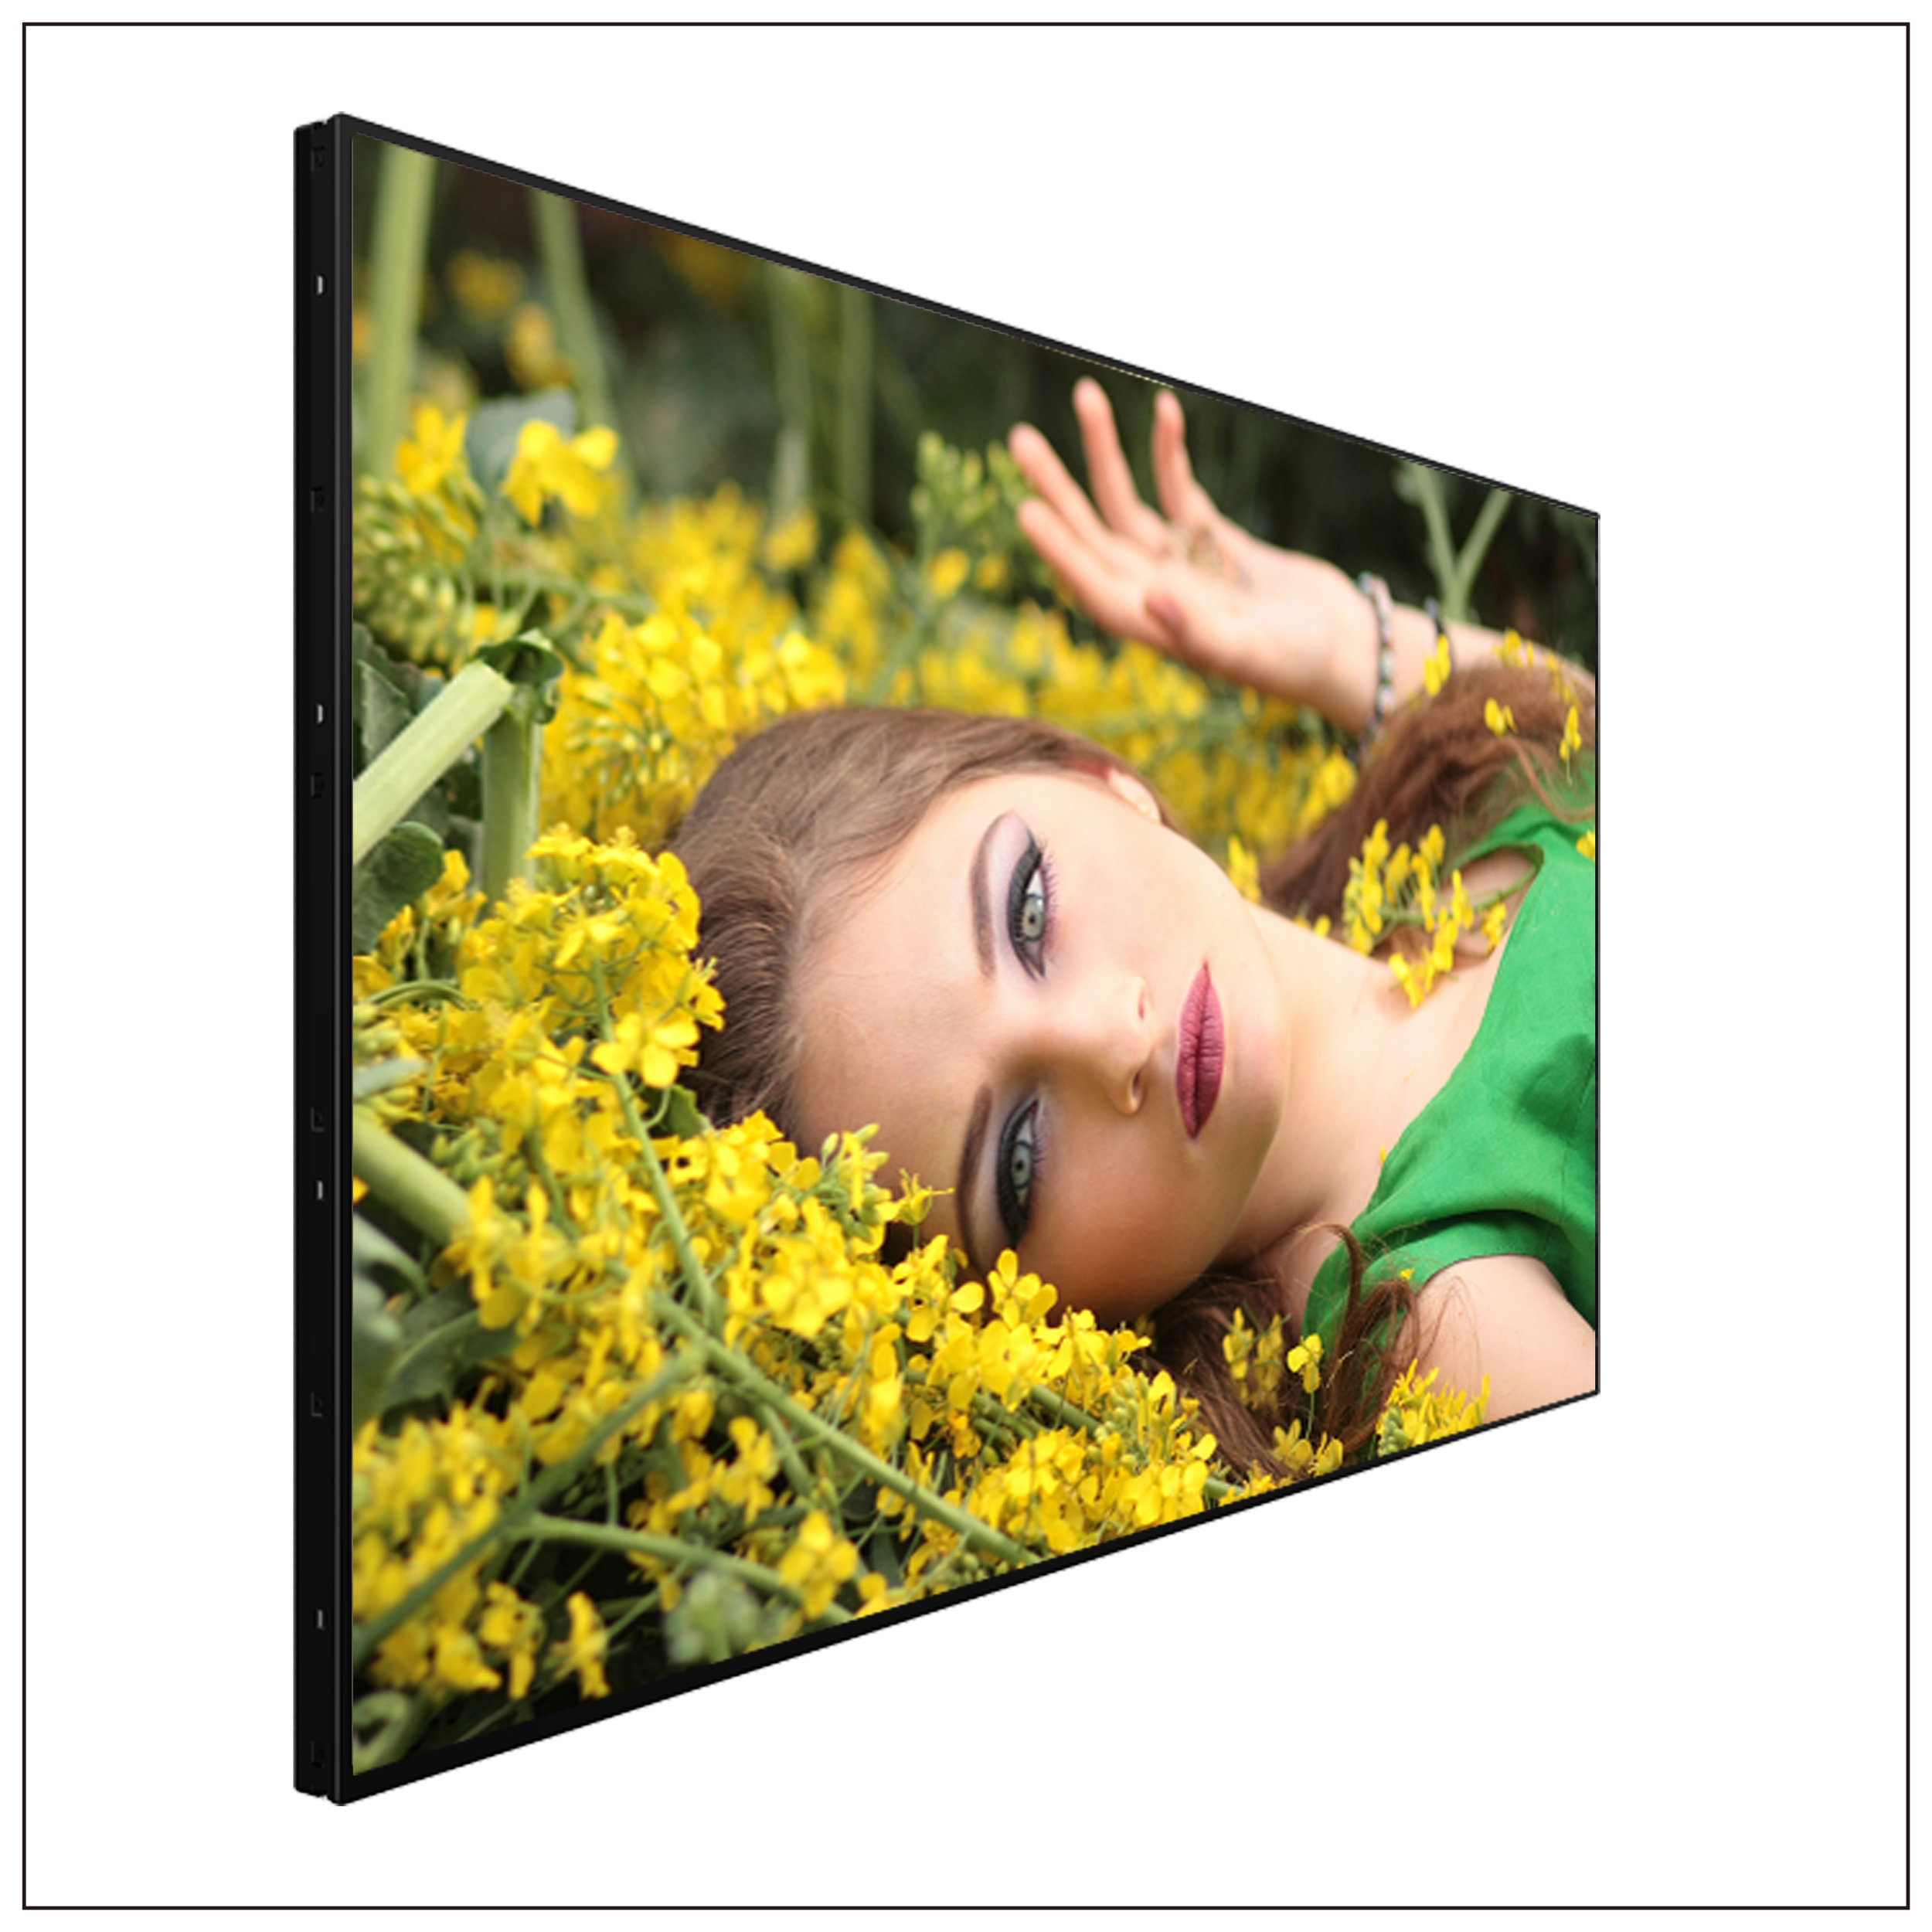 Digital Signage(Android System) - Panel Size : 32,43,49,55 inchBrightness: 450 nitsResolution: 1920 x 1080